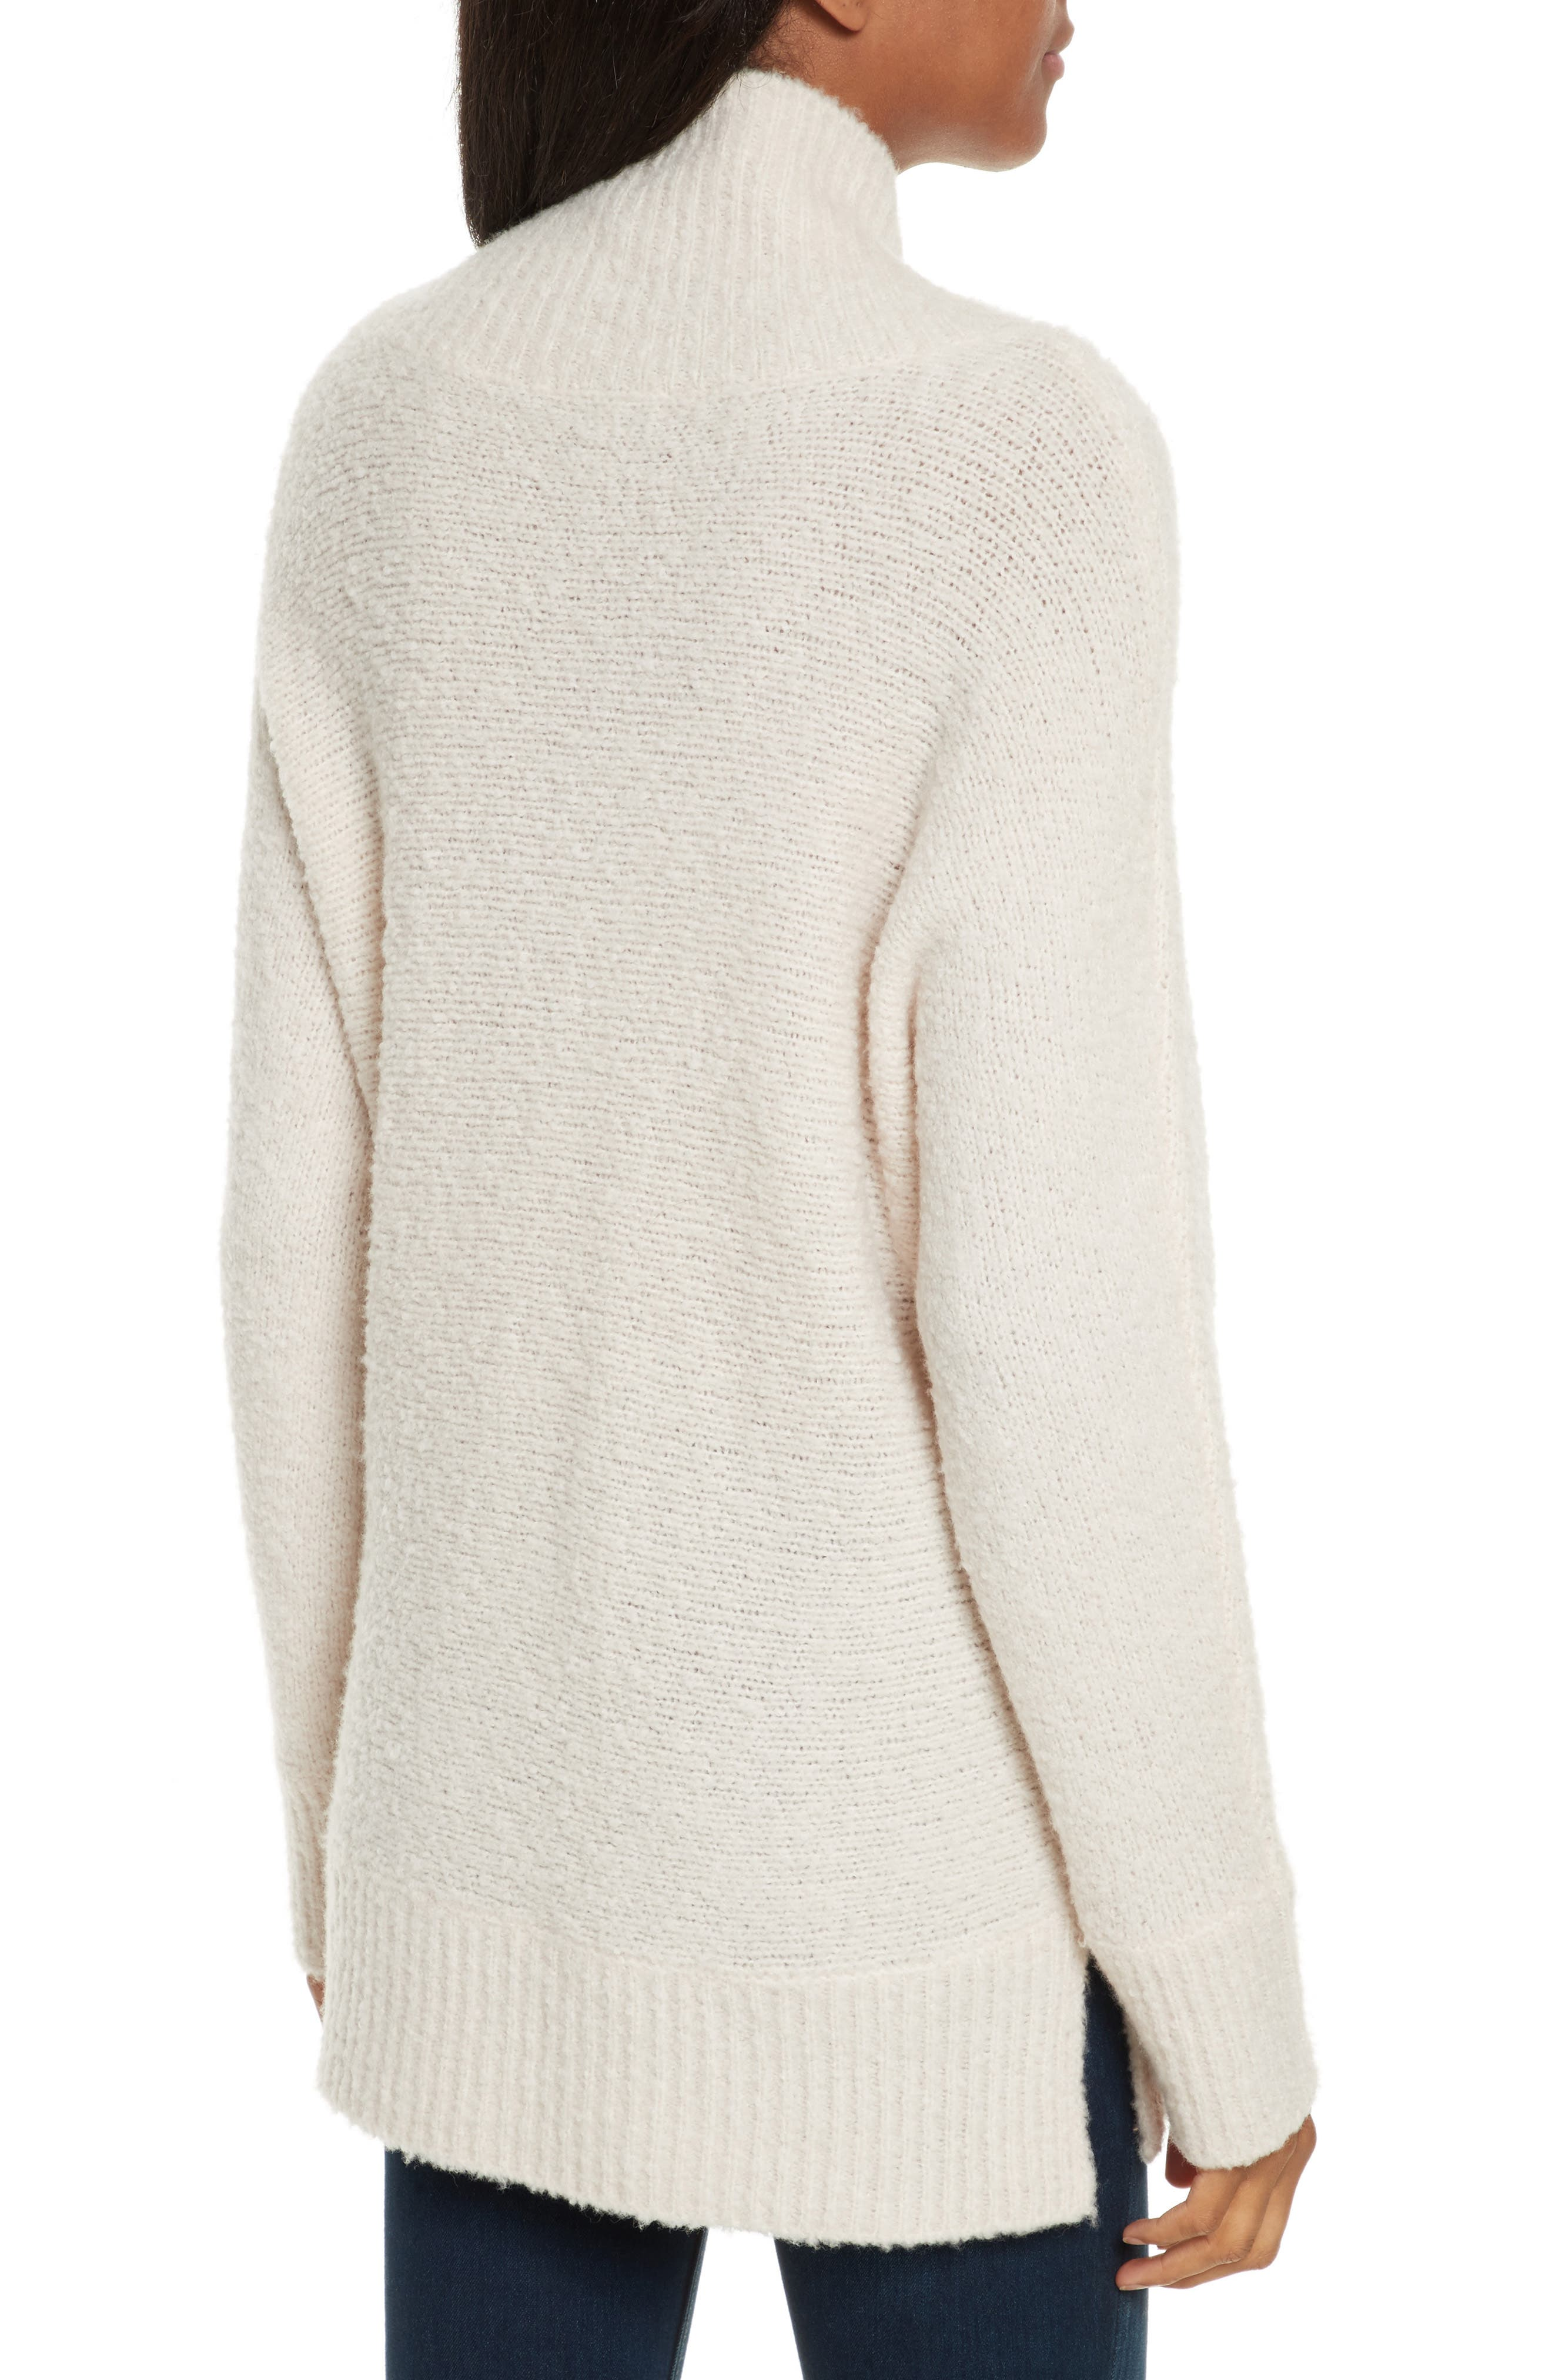 Lehi Wool & Cashmere Sweater,                             Alternate thumbnail 4, color,